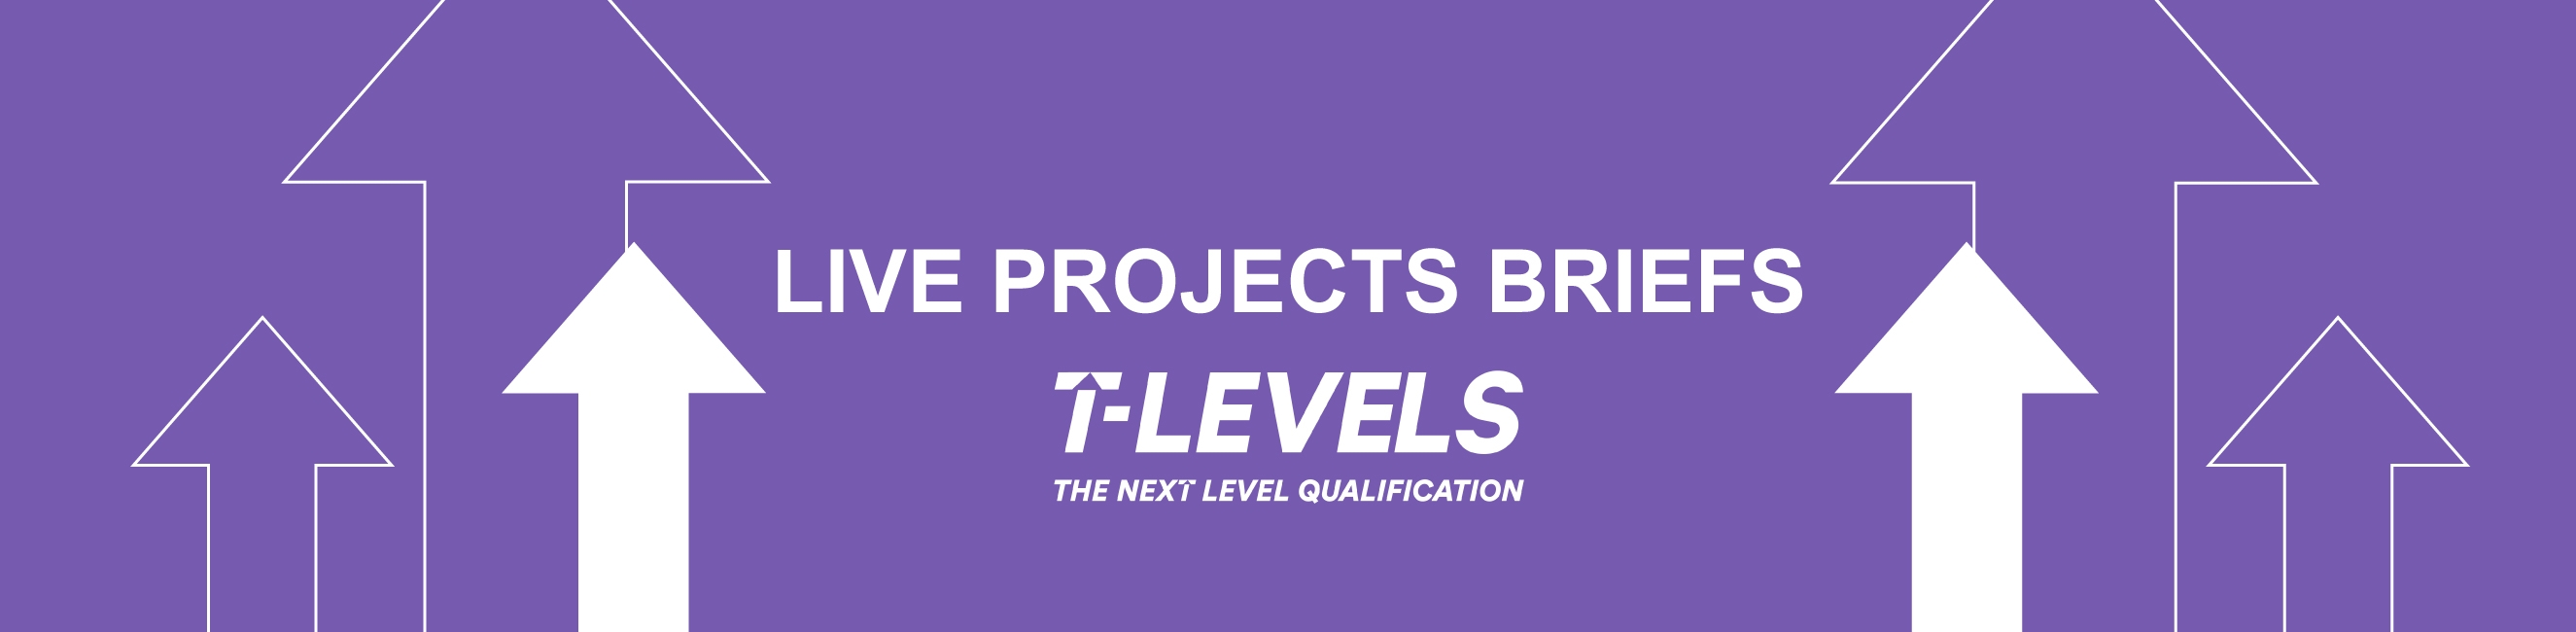 live projects briefs